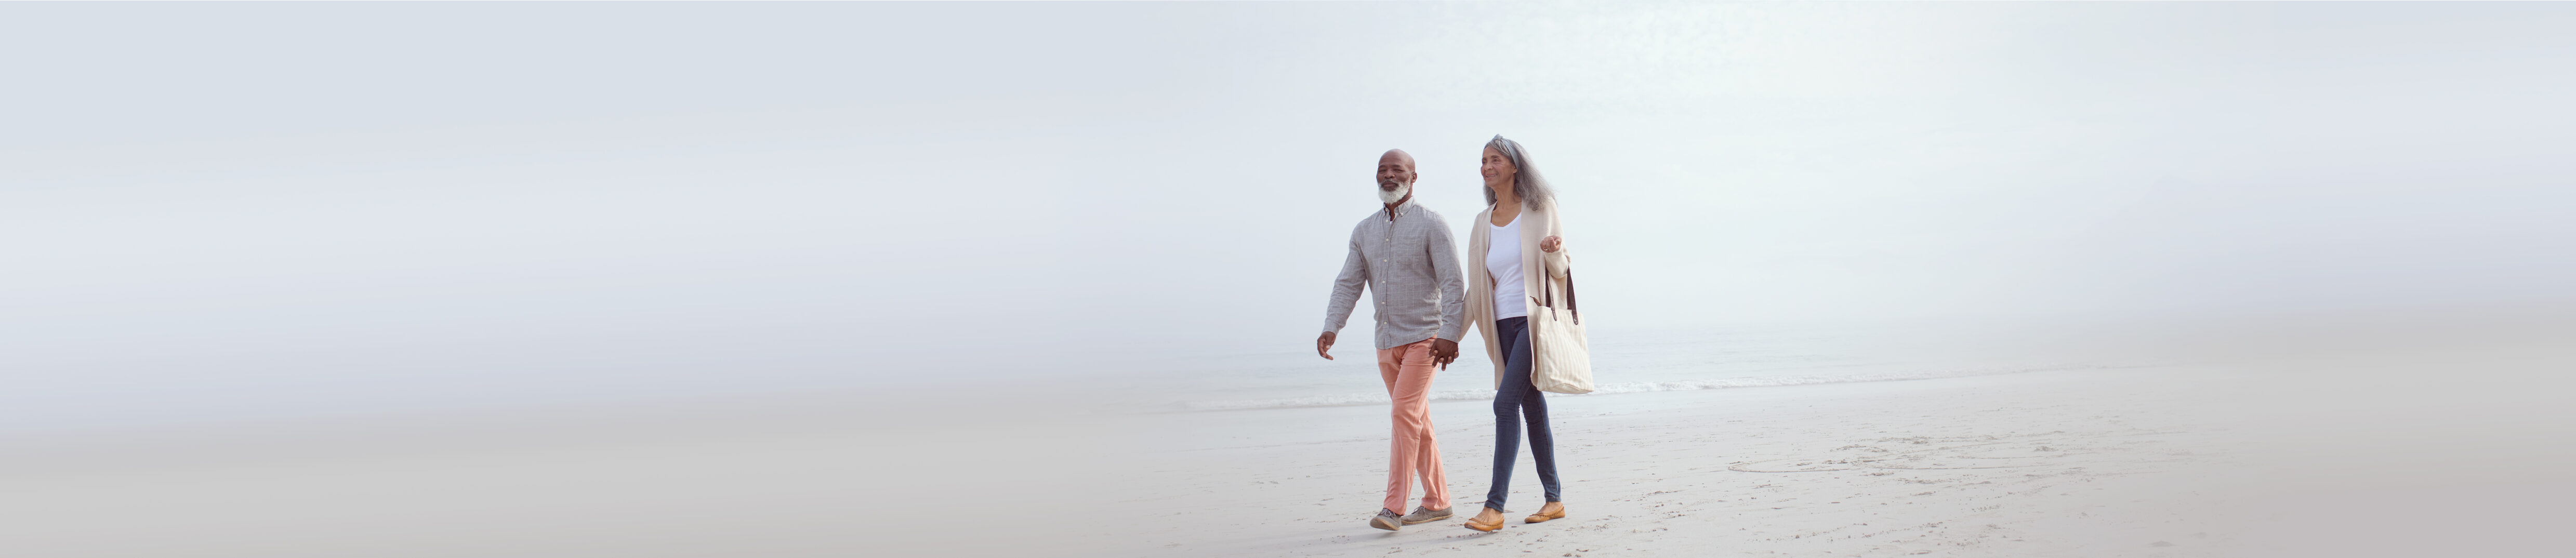 A couple walking at the beach